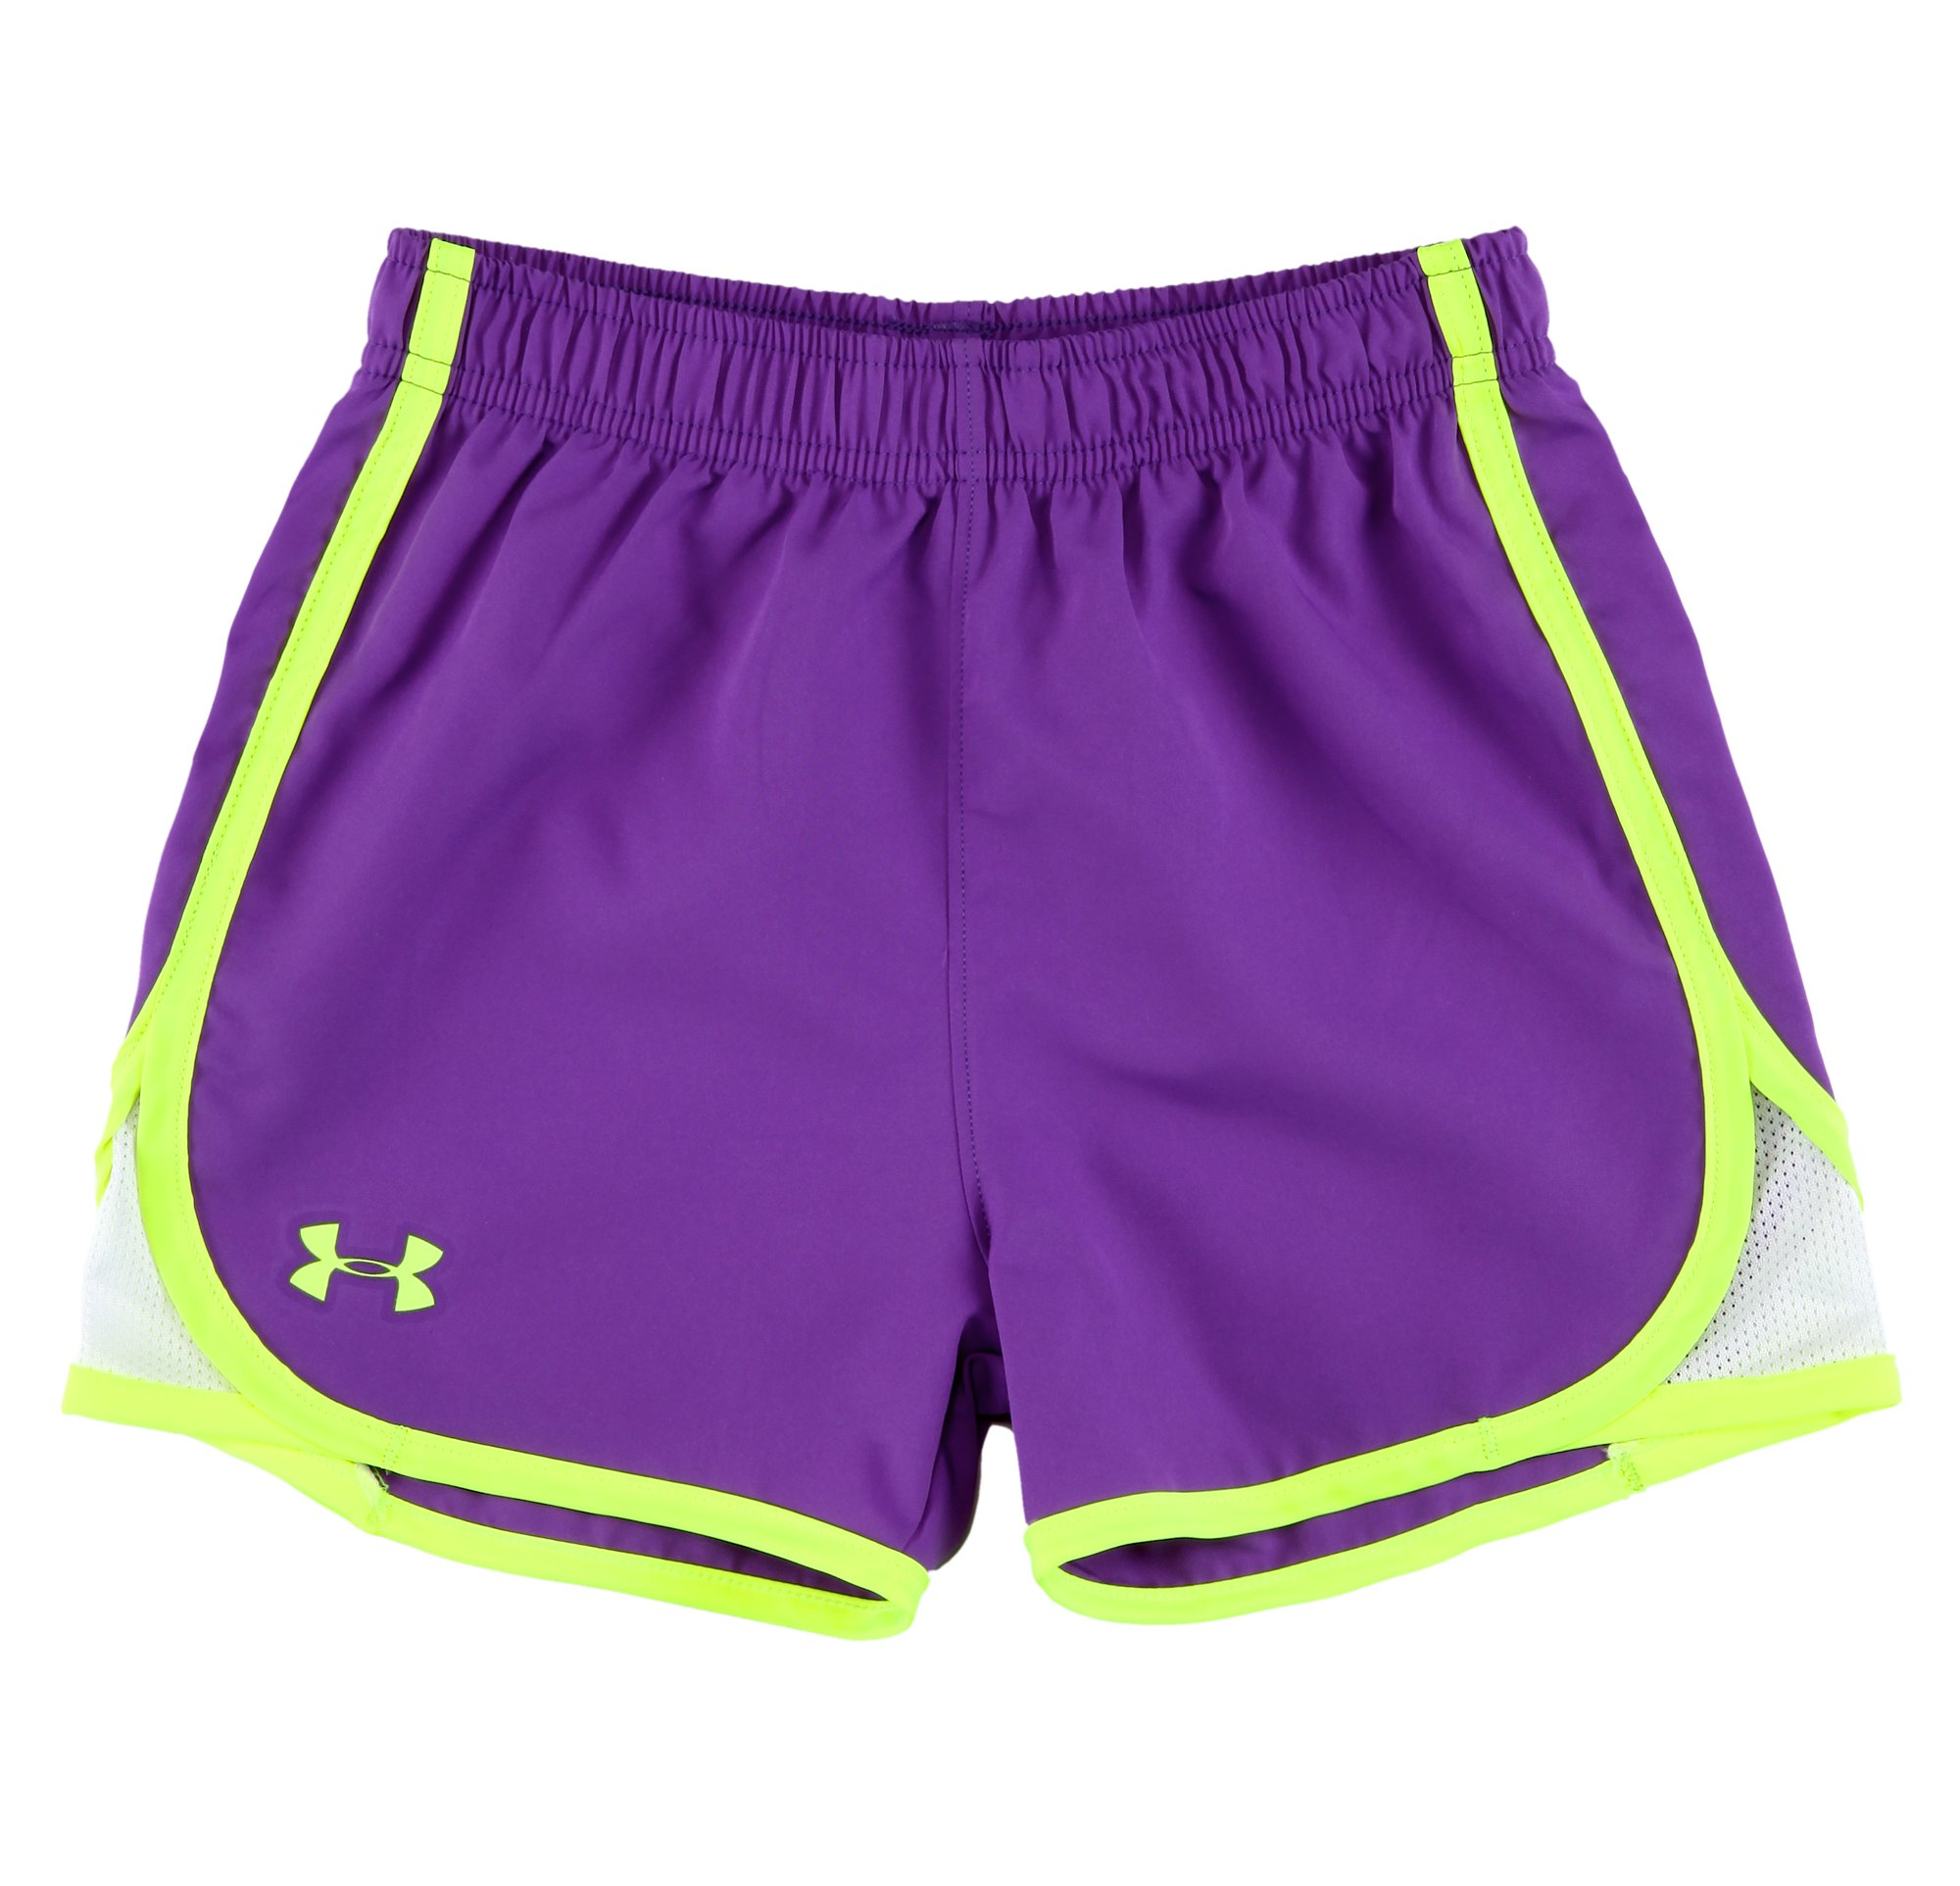 Girls' Toddler UA Escape Shorts, LAVISH, Laydown